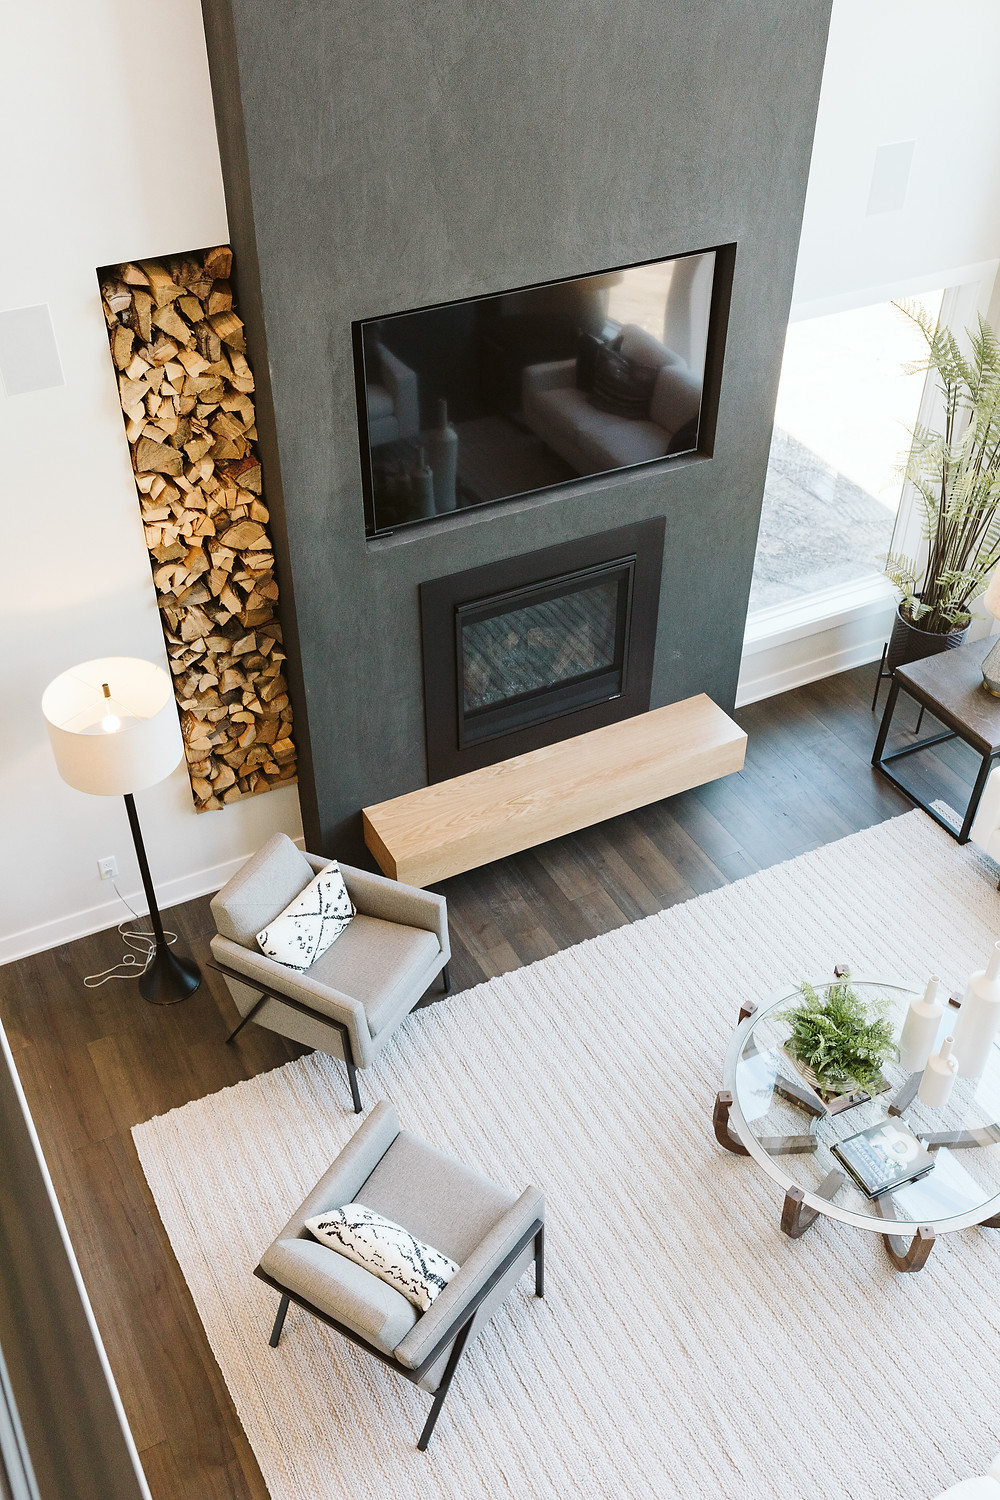 Black stucco fireplace, floating bench, stacked firewood